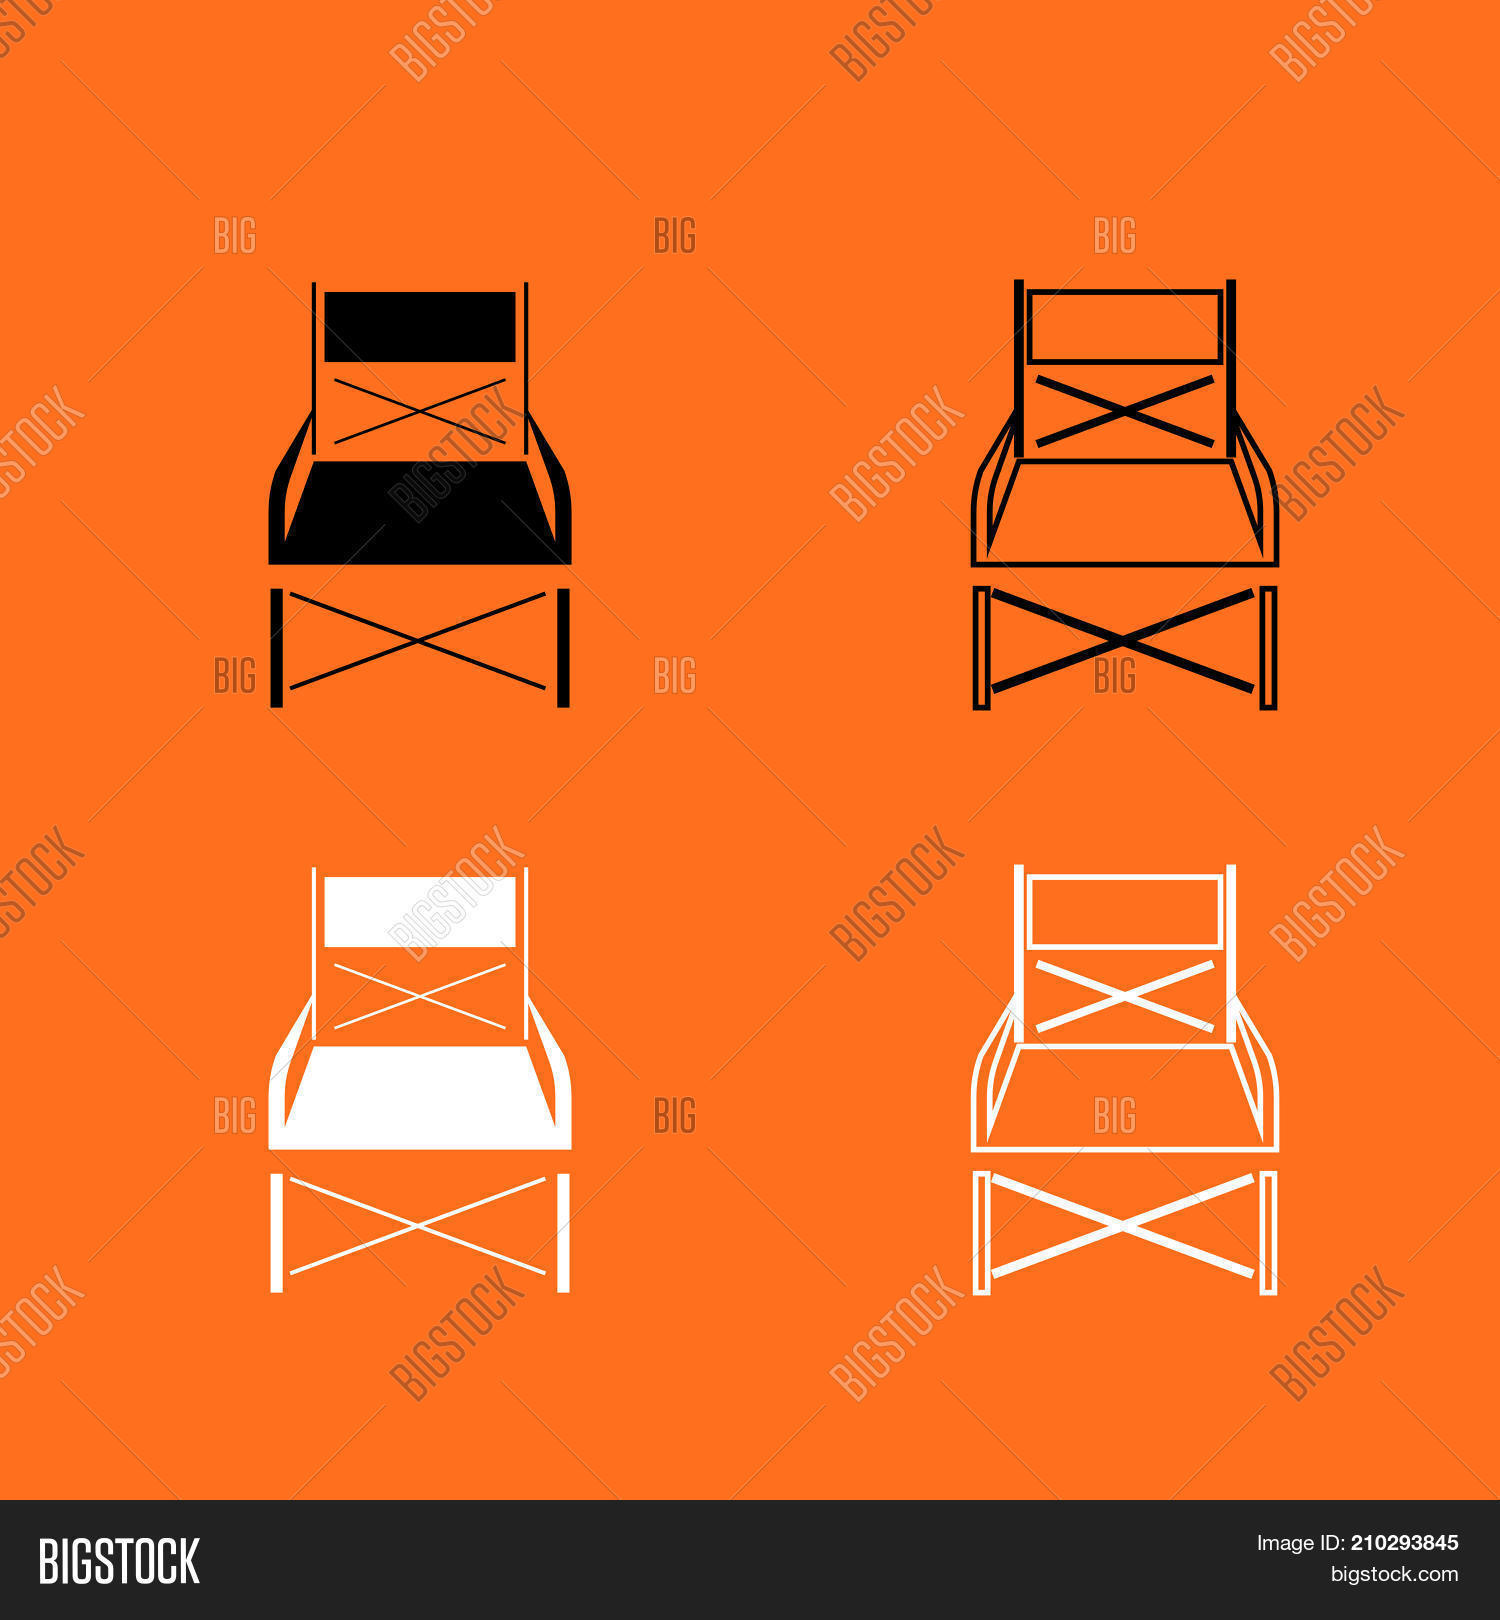 Phenomenal Folding Chair Black Vector Photo Free Trial Bigstock Pdpeps Interior Chair Design Pdpepsorg